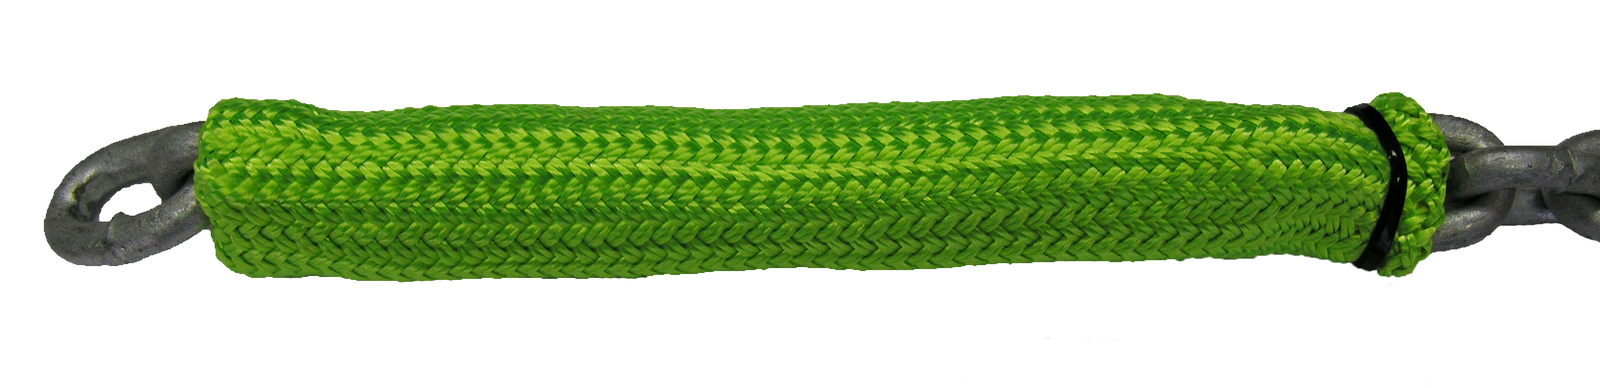 Chain Sock Fluro Green Designed To Protect Vessels Winch And Dampen Chain Noise Suits 8m x 6mm Short Link